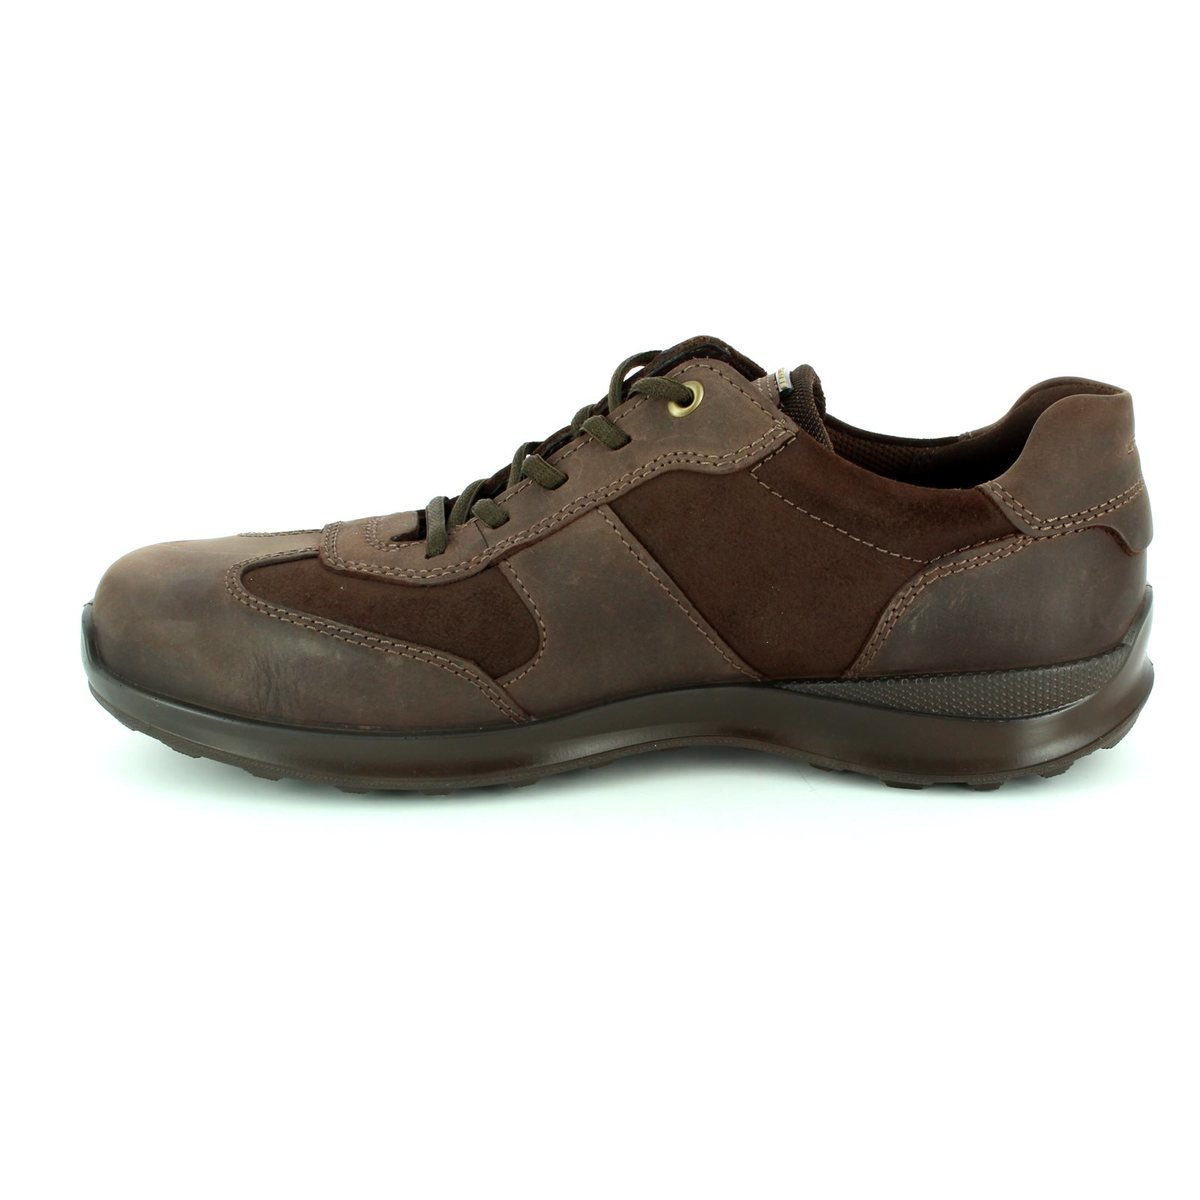 ecco 501314 58290 brown nubuck casual shoes